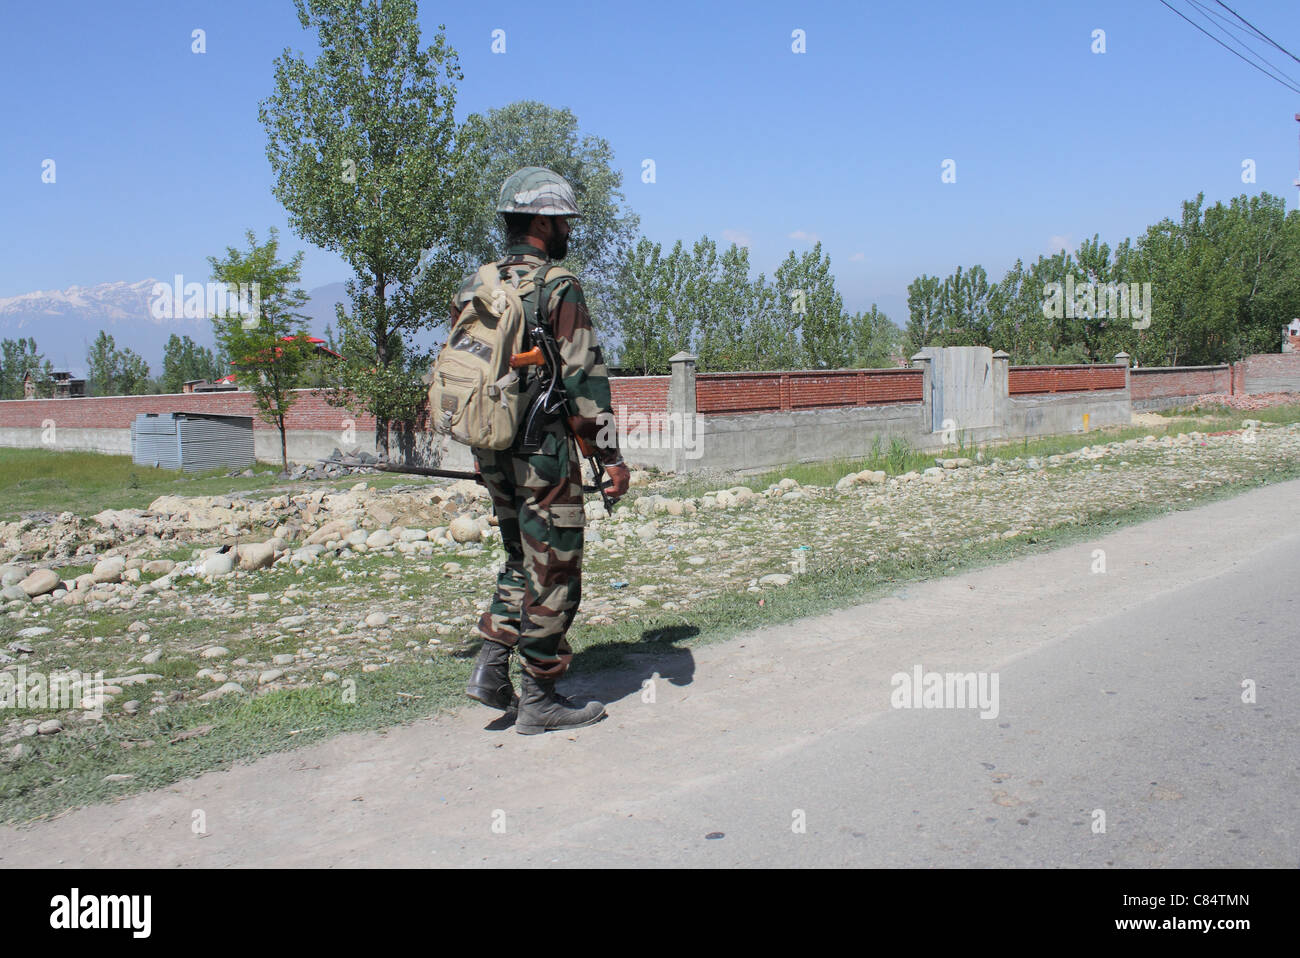 Indian army soldier on patrol in kashmir - Stock Image